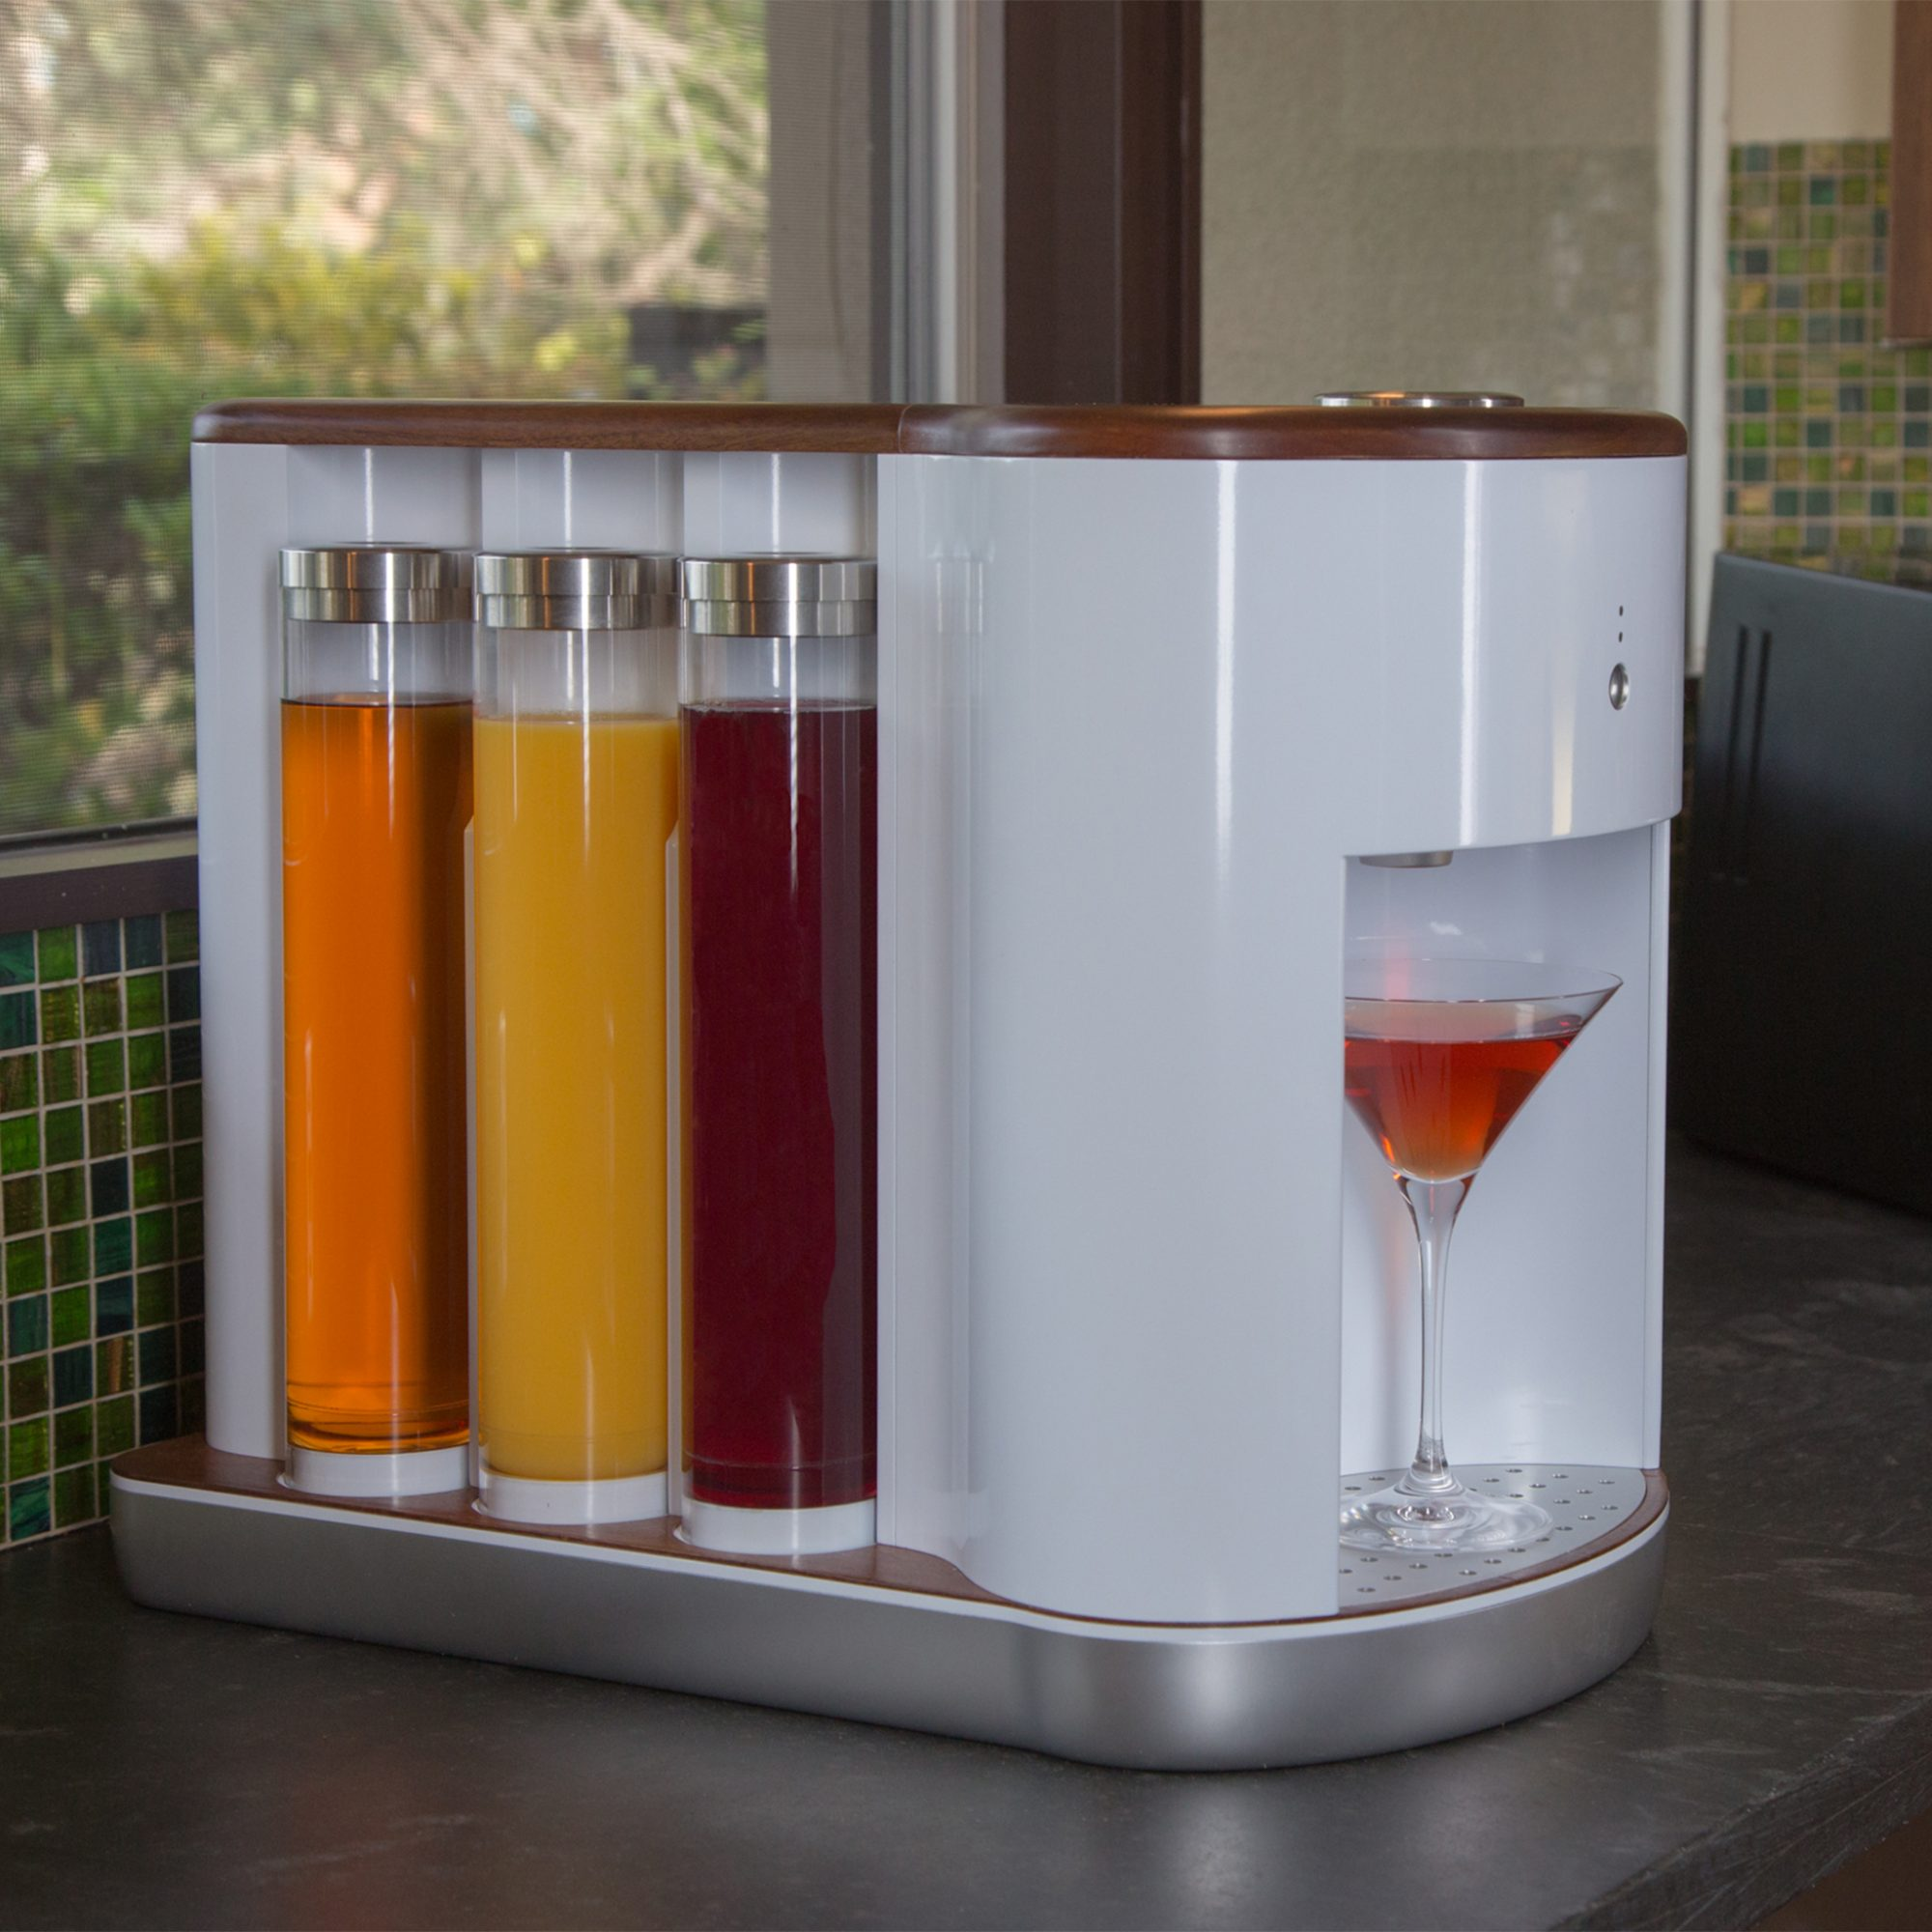 Never Shake Your Own Drink Again with This Robotic Cocktail Mixer